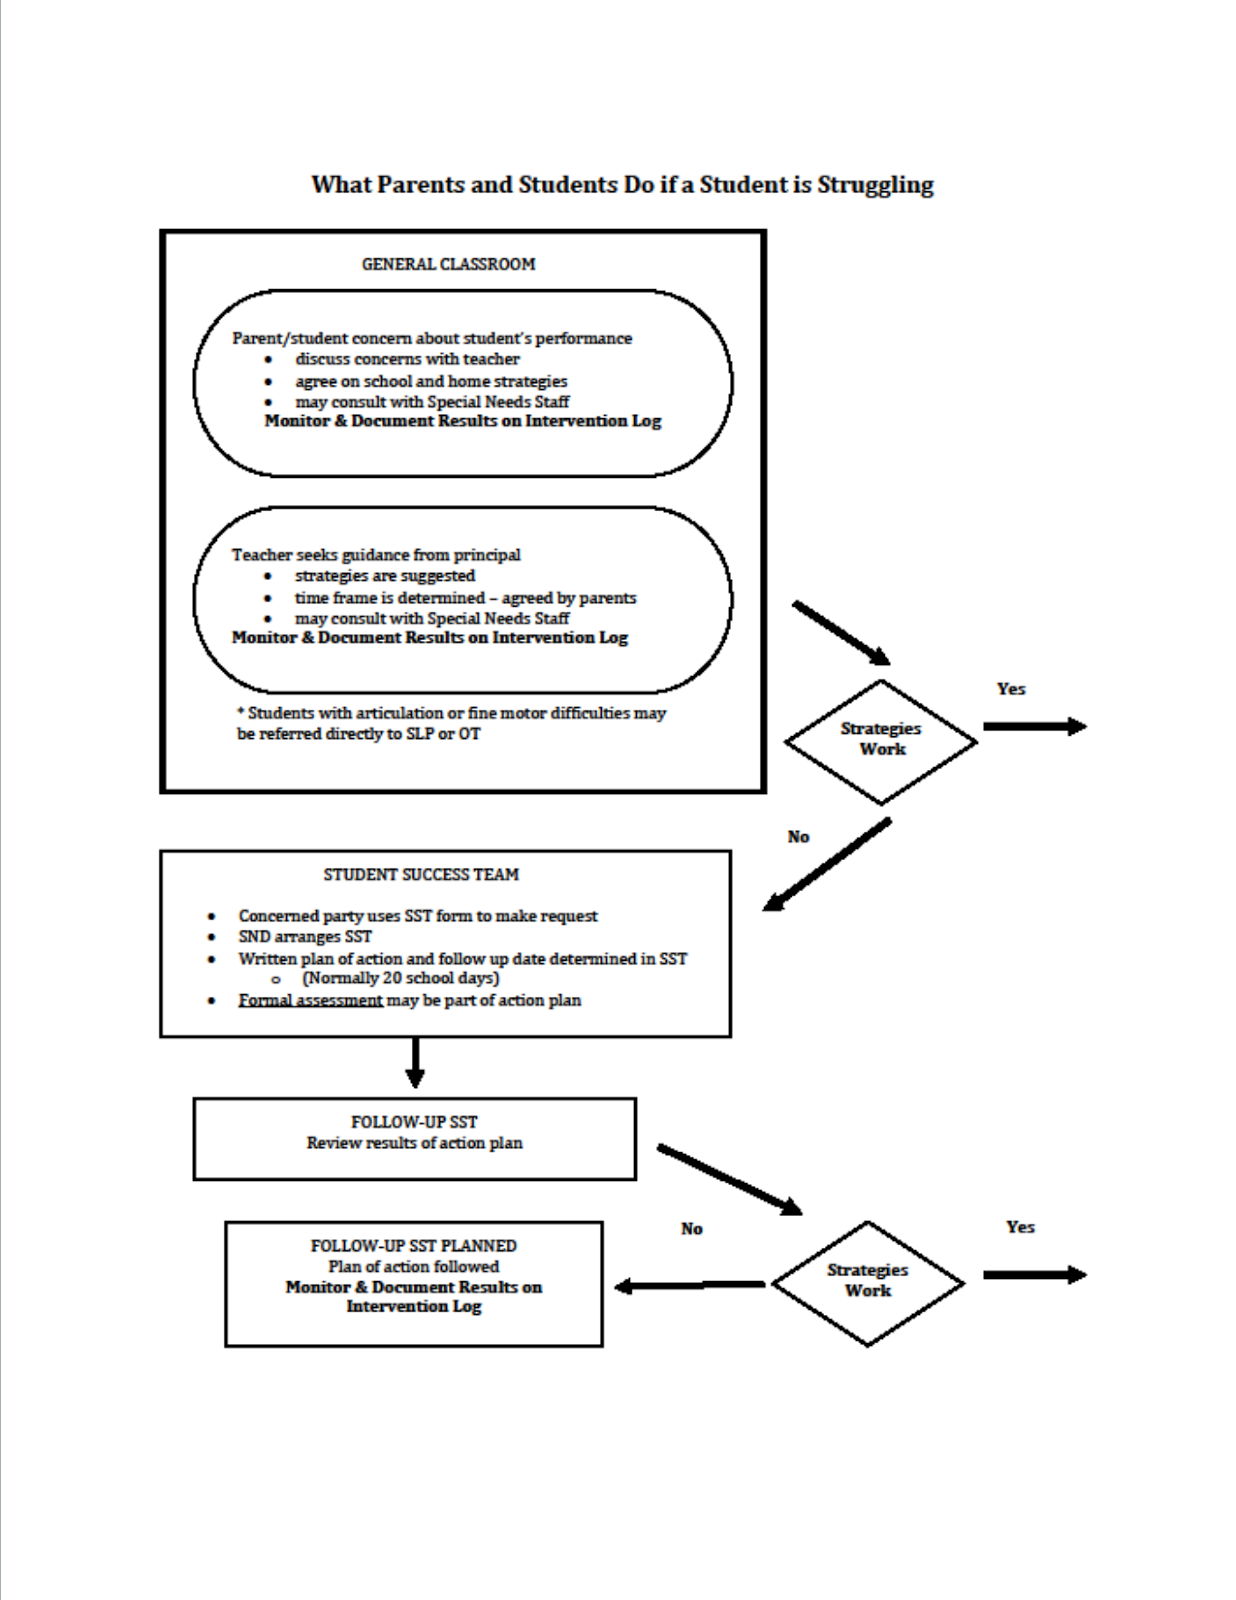 Flow Chart of struggling student for parents.png